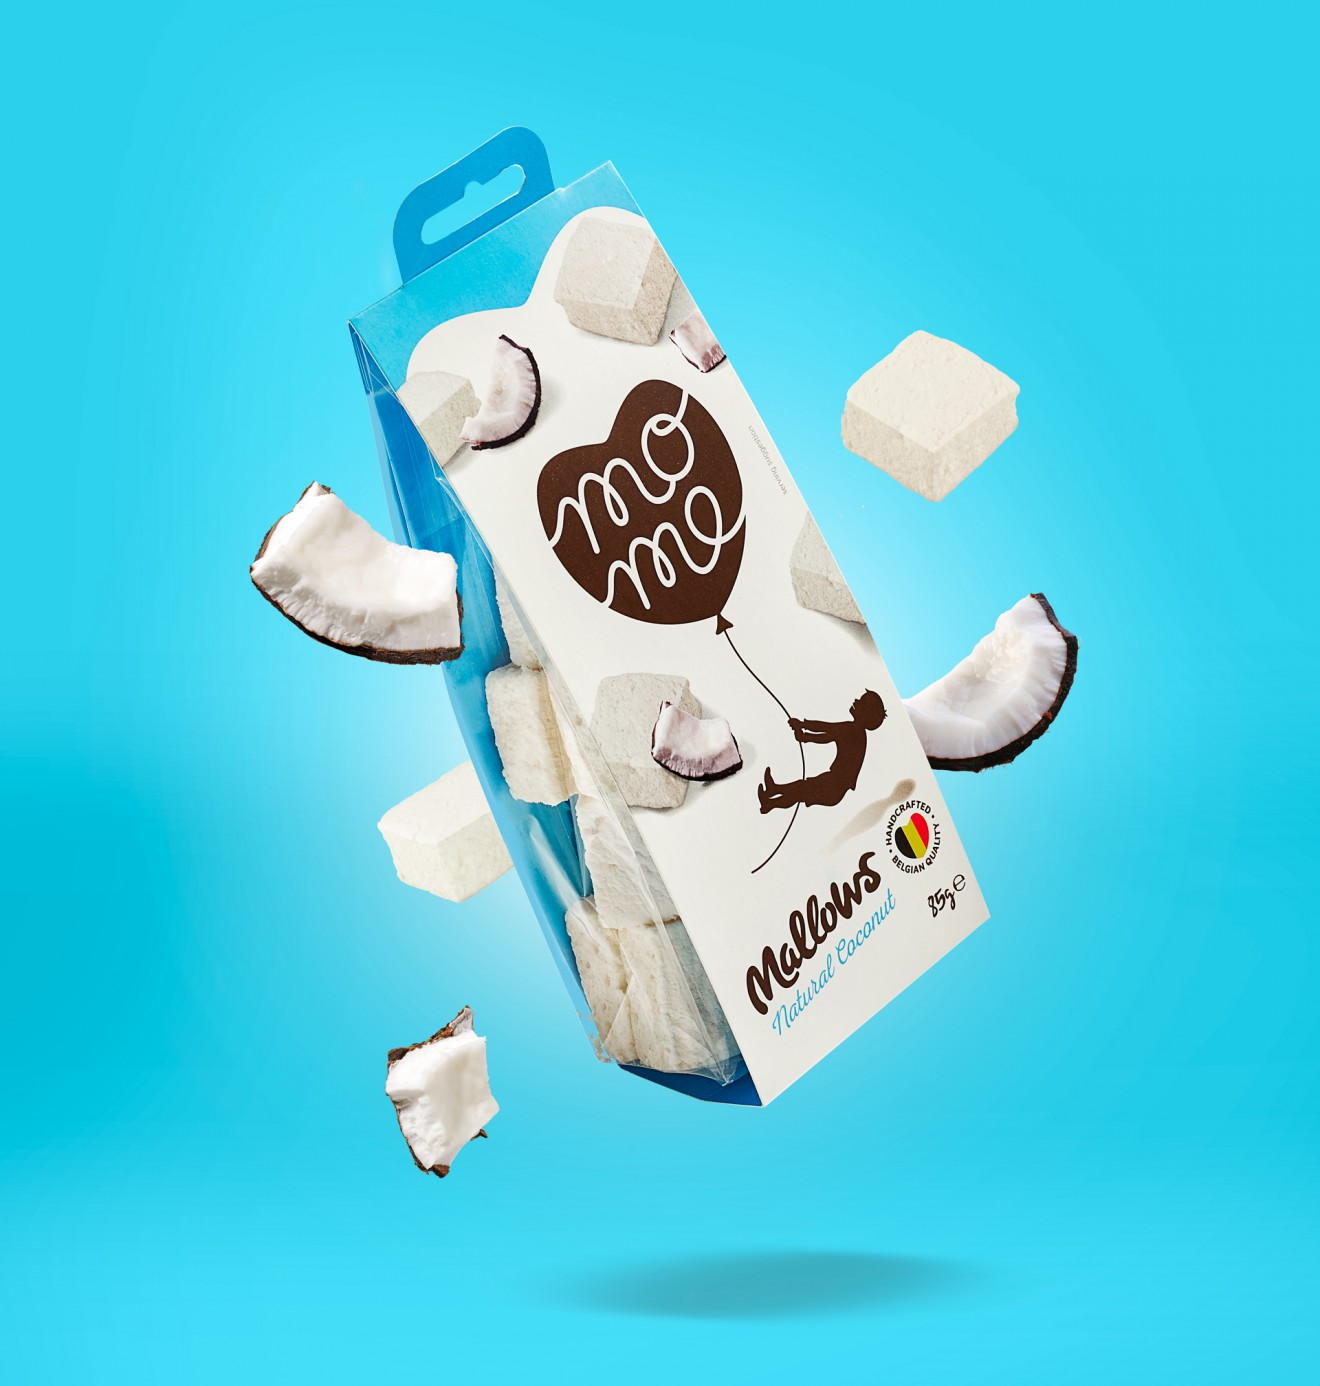 Quatre Mains package design - coconut, marshmallow, restyling, packaging